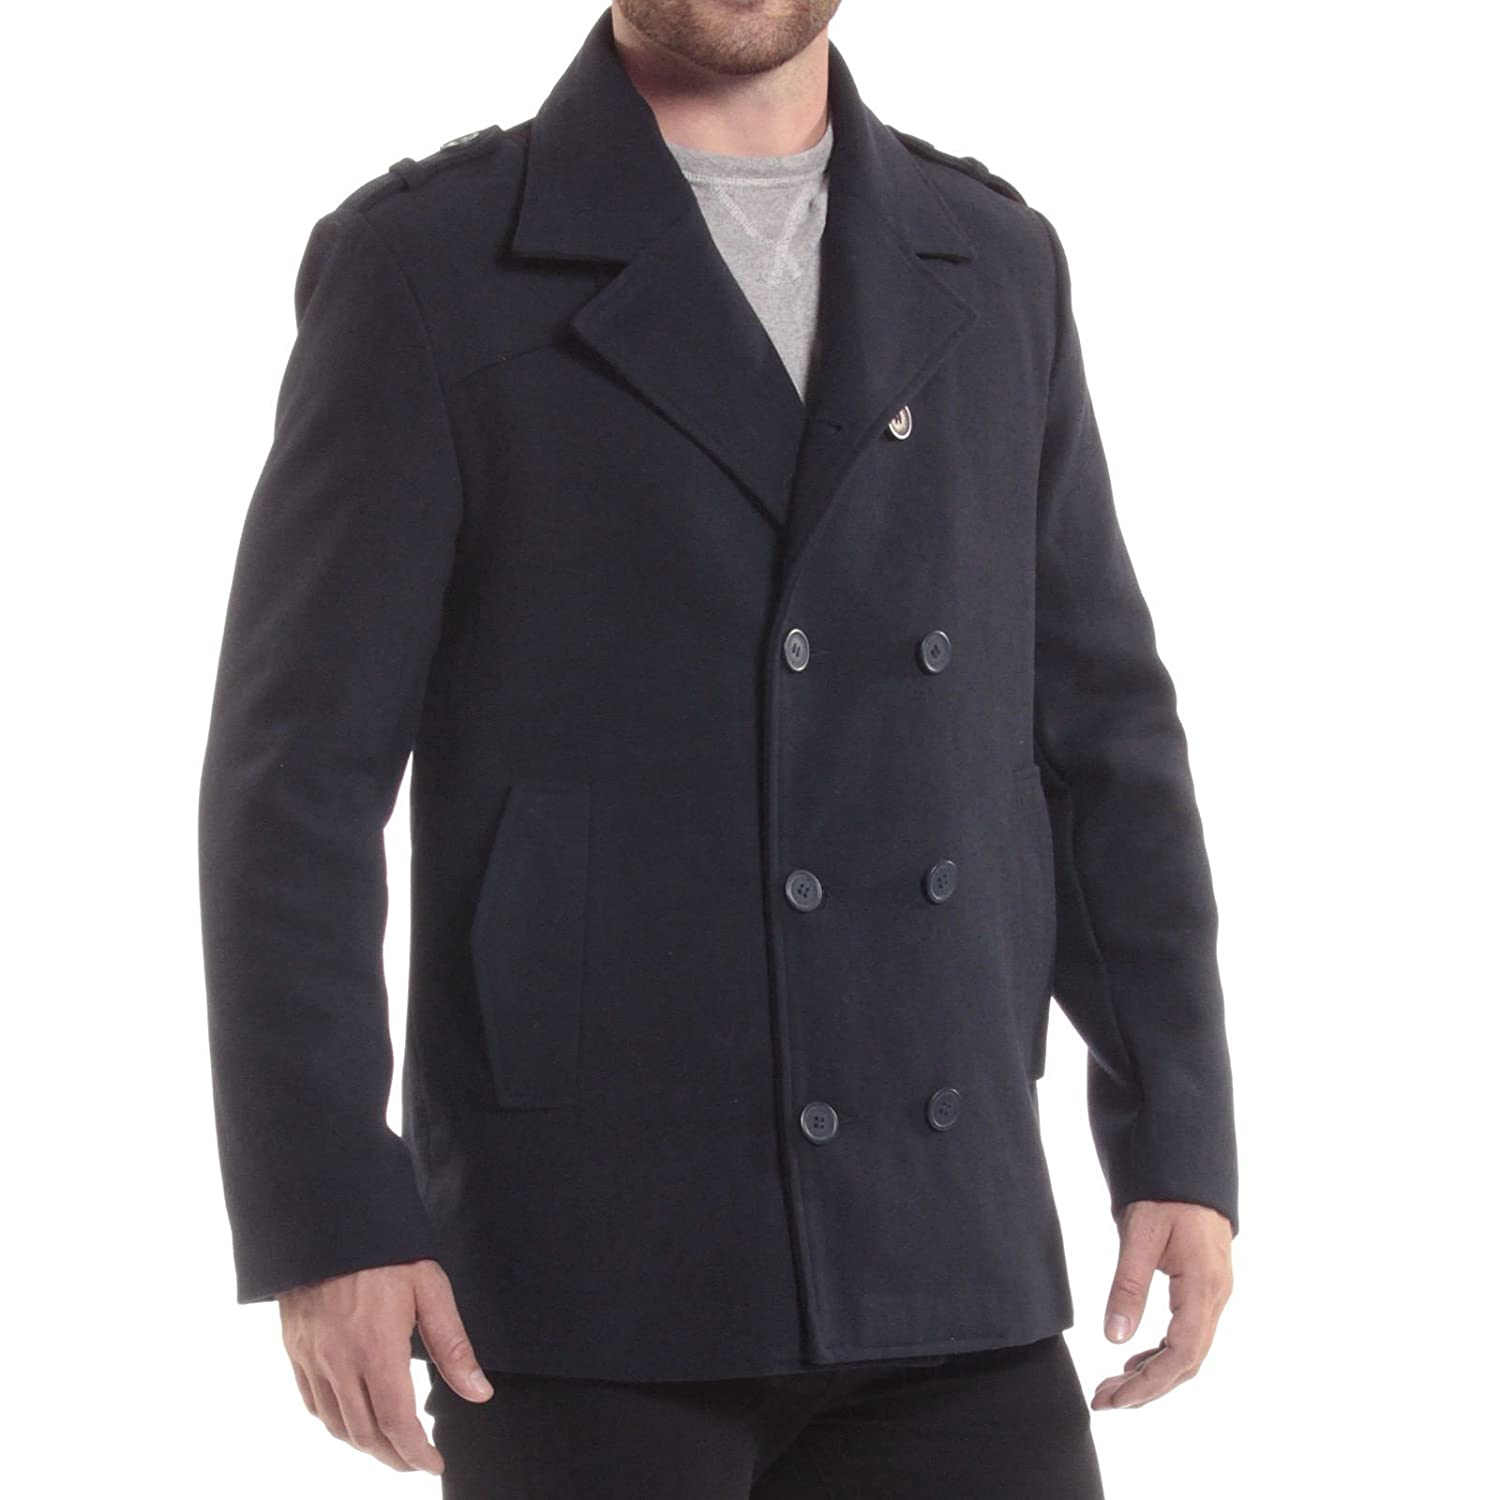 Men's Vintage Style Coats and Jackets alpine swiss Jake Mens Wool Pea Coat Double Breasted Jacket $39.99 AT vintagedancer.com